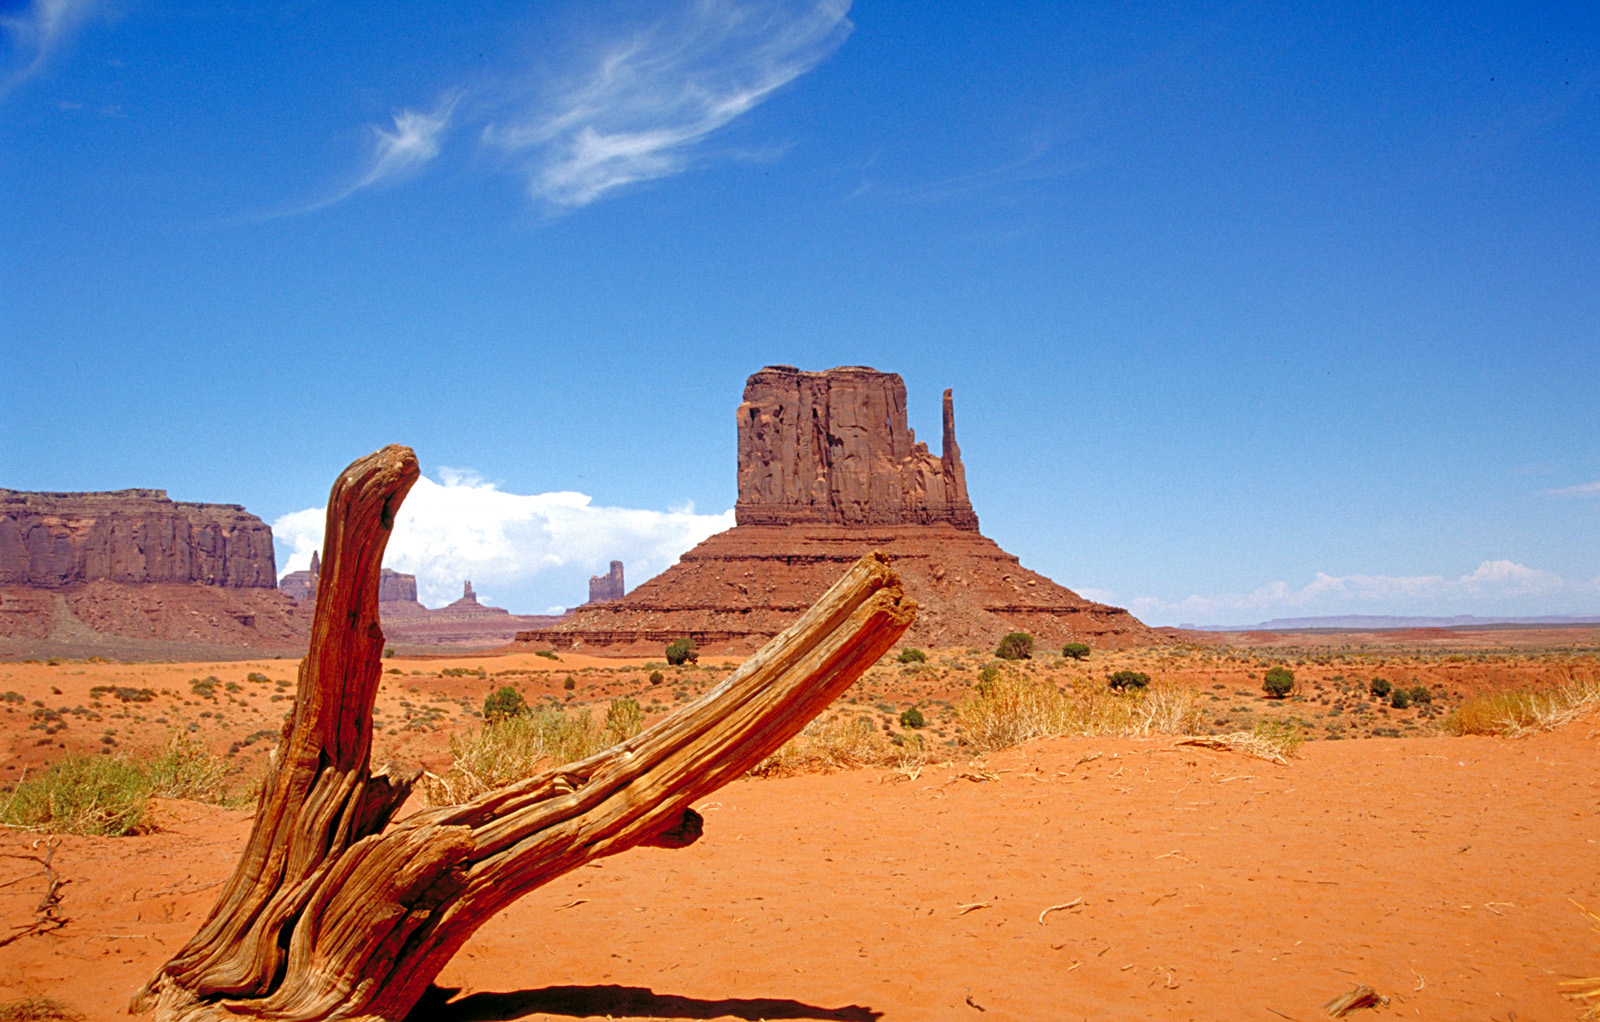 https://upload.wikimedia.org/wikipedia/commons/5/5a/Monument_Valley_2.jpg